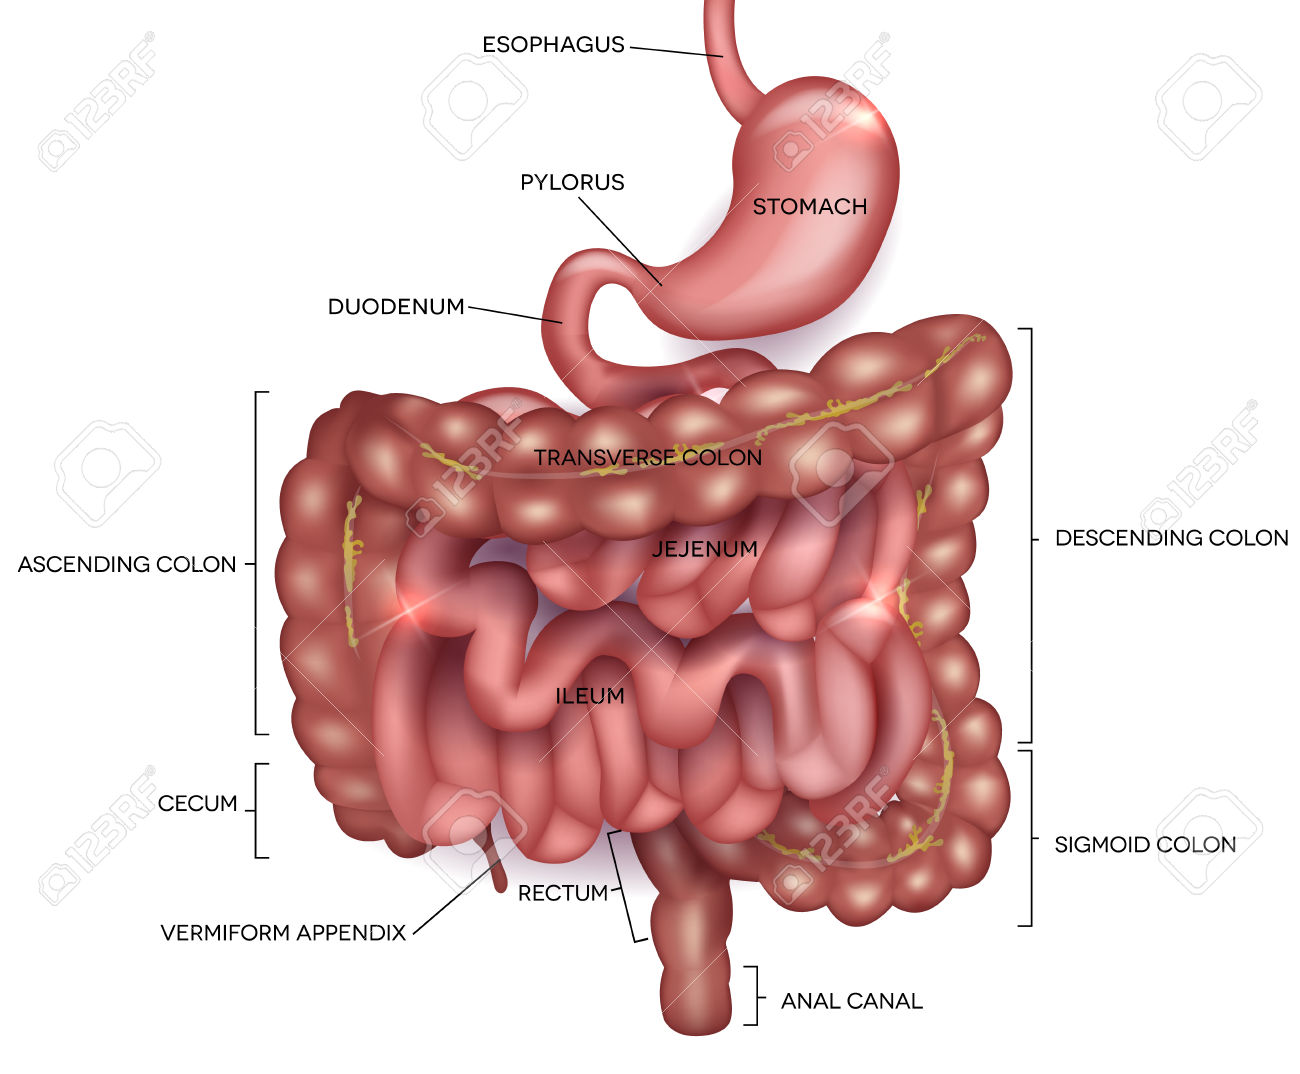 Human digestive system Human digestive system the system used in the human body for the process of digestion The human digestive system consists